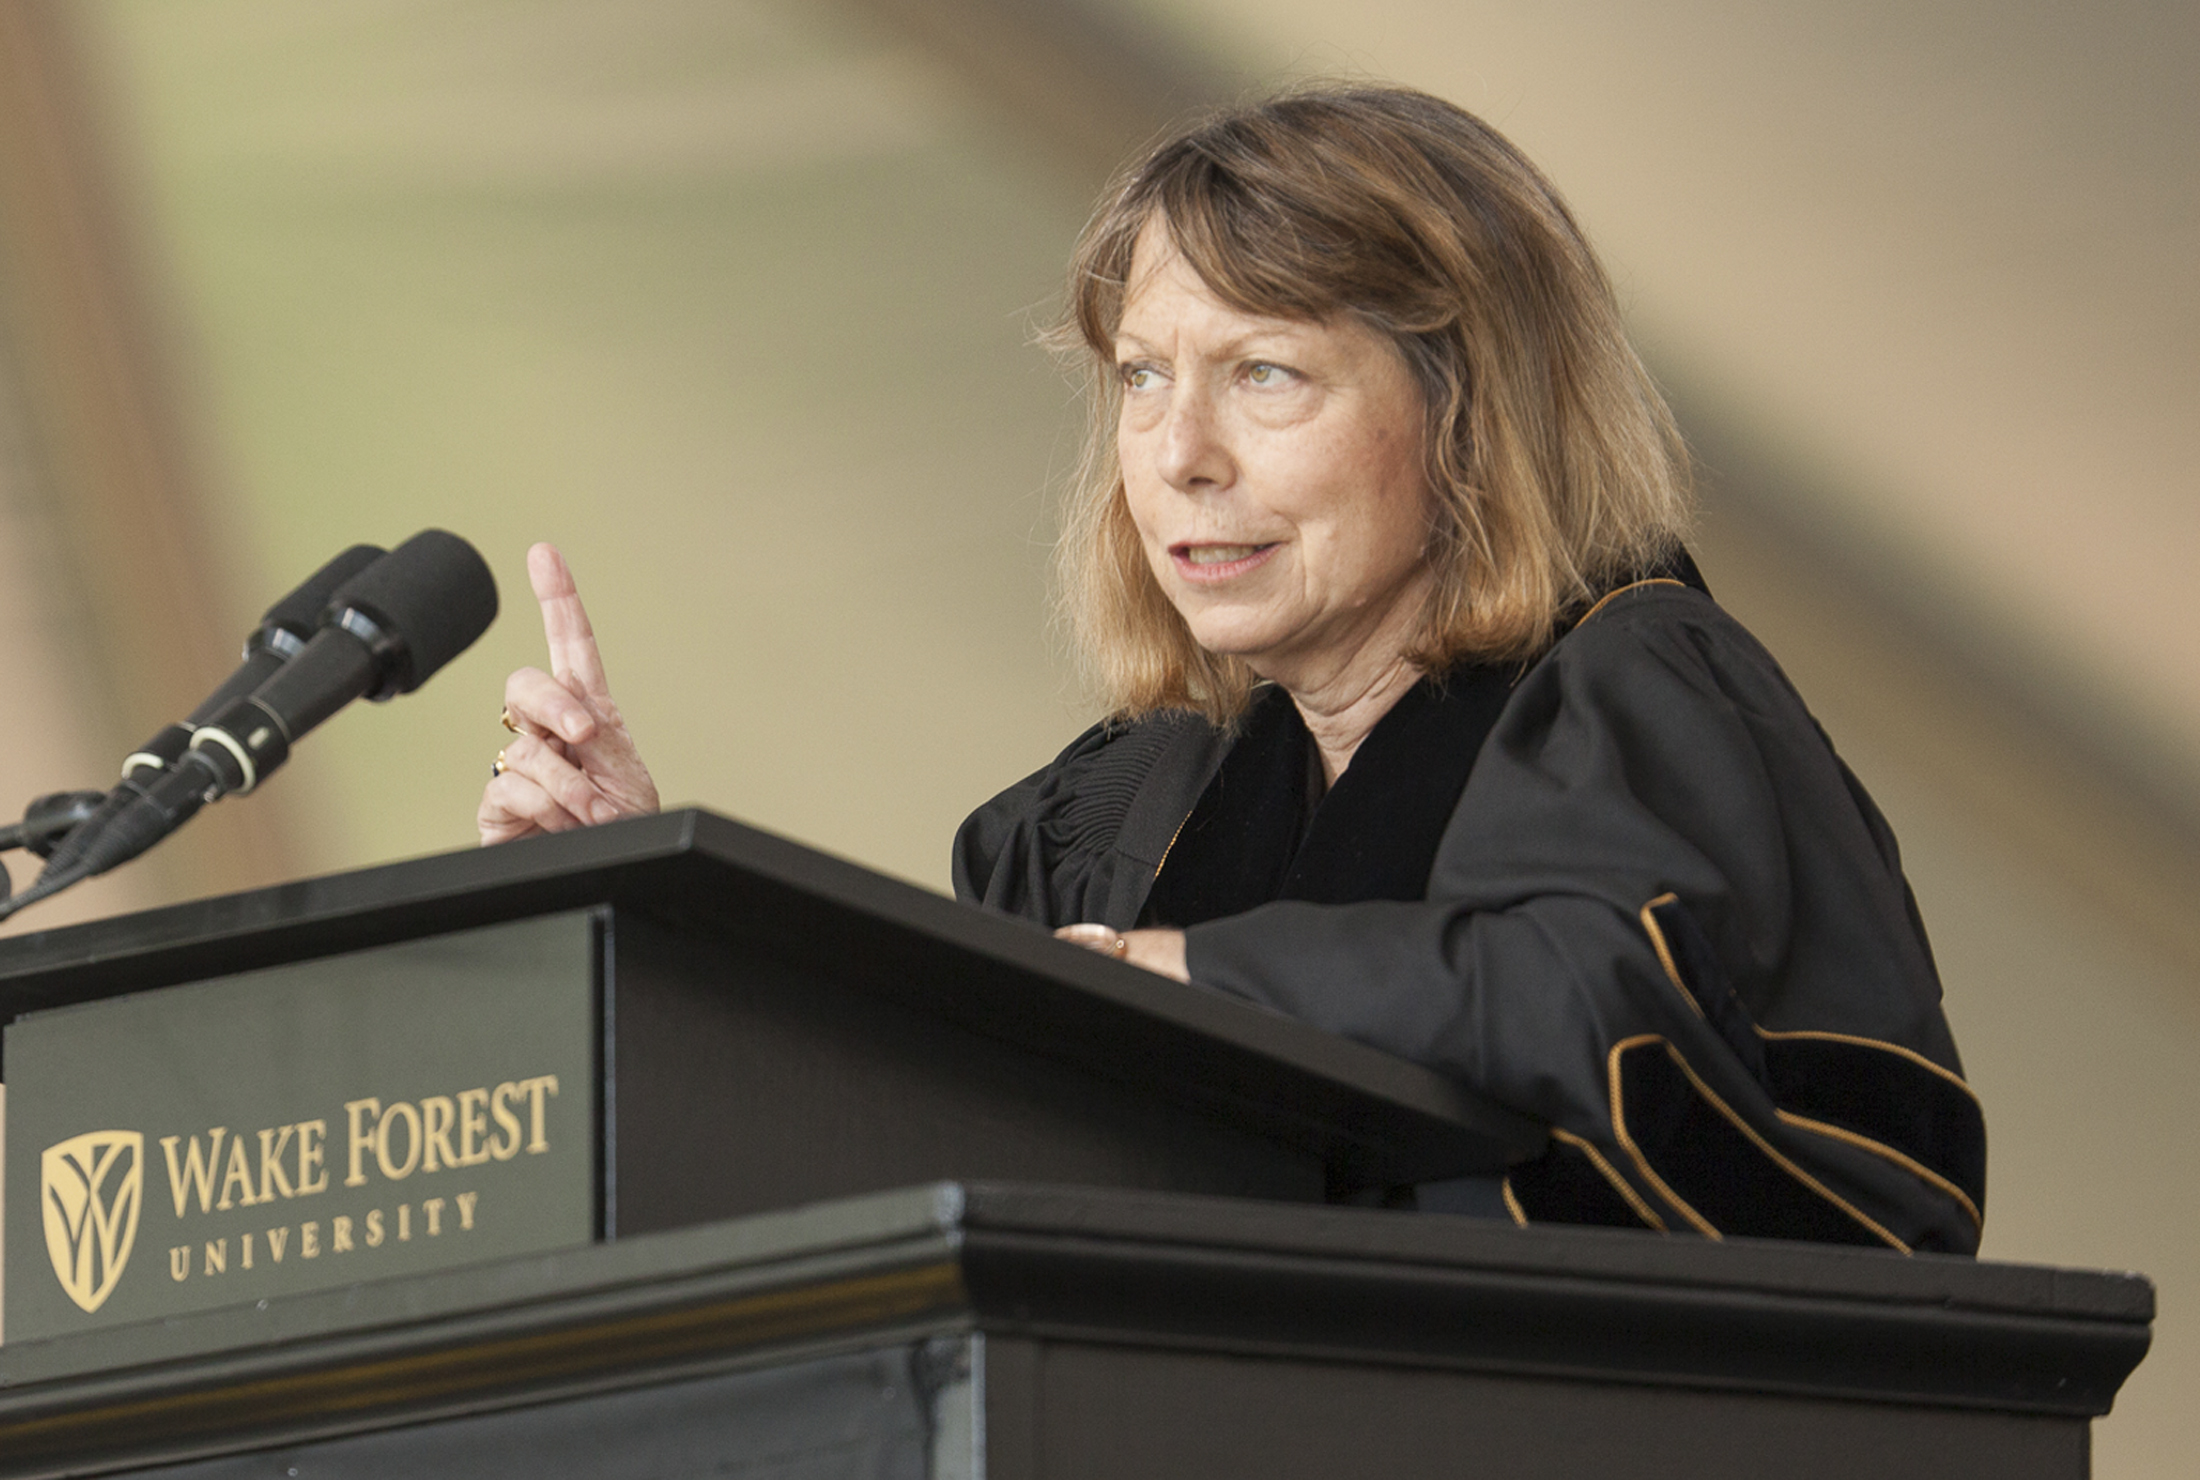 Jill Abramson, former Executive Editor of the New York Times, gives the commencement address at Wake Forest University in Winston-Salem, North Carolina